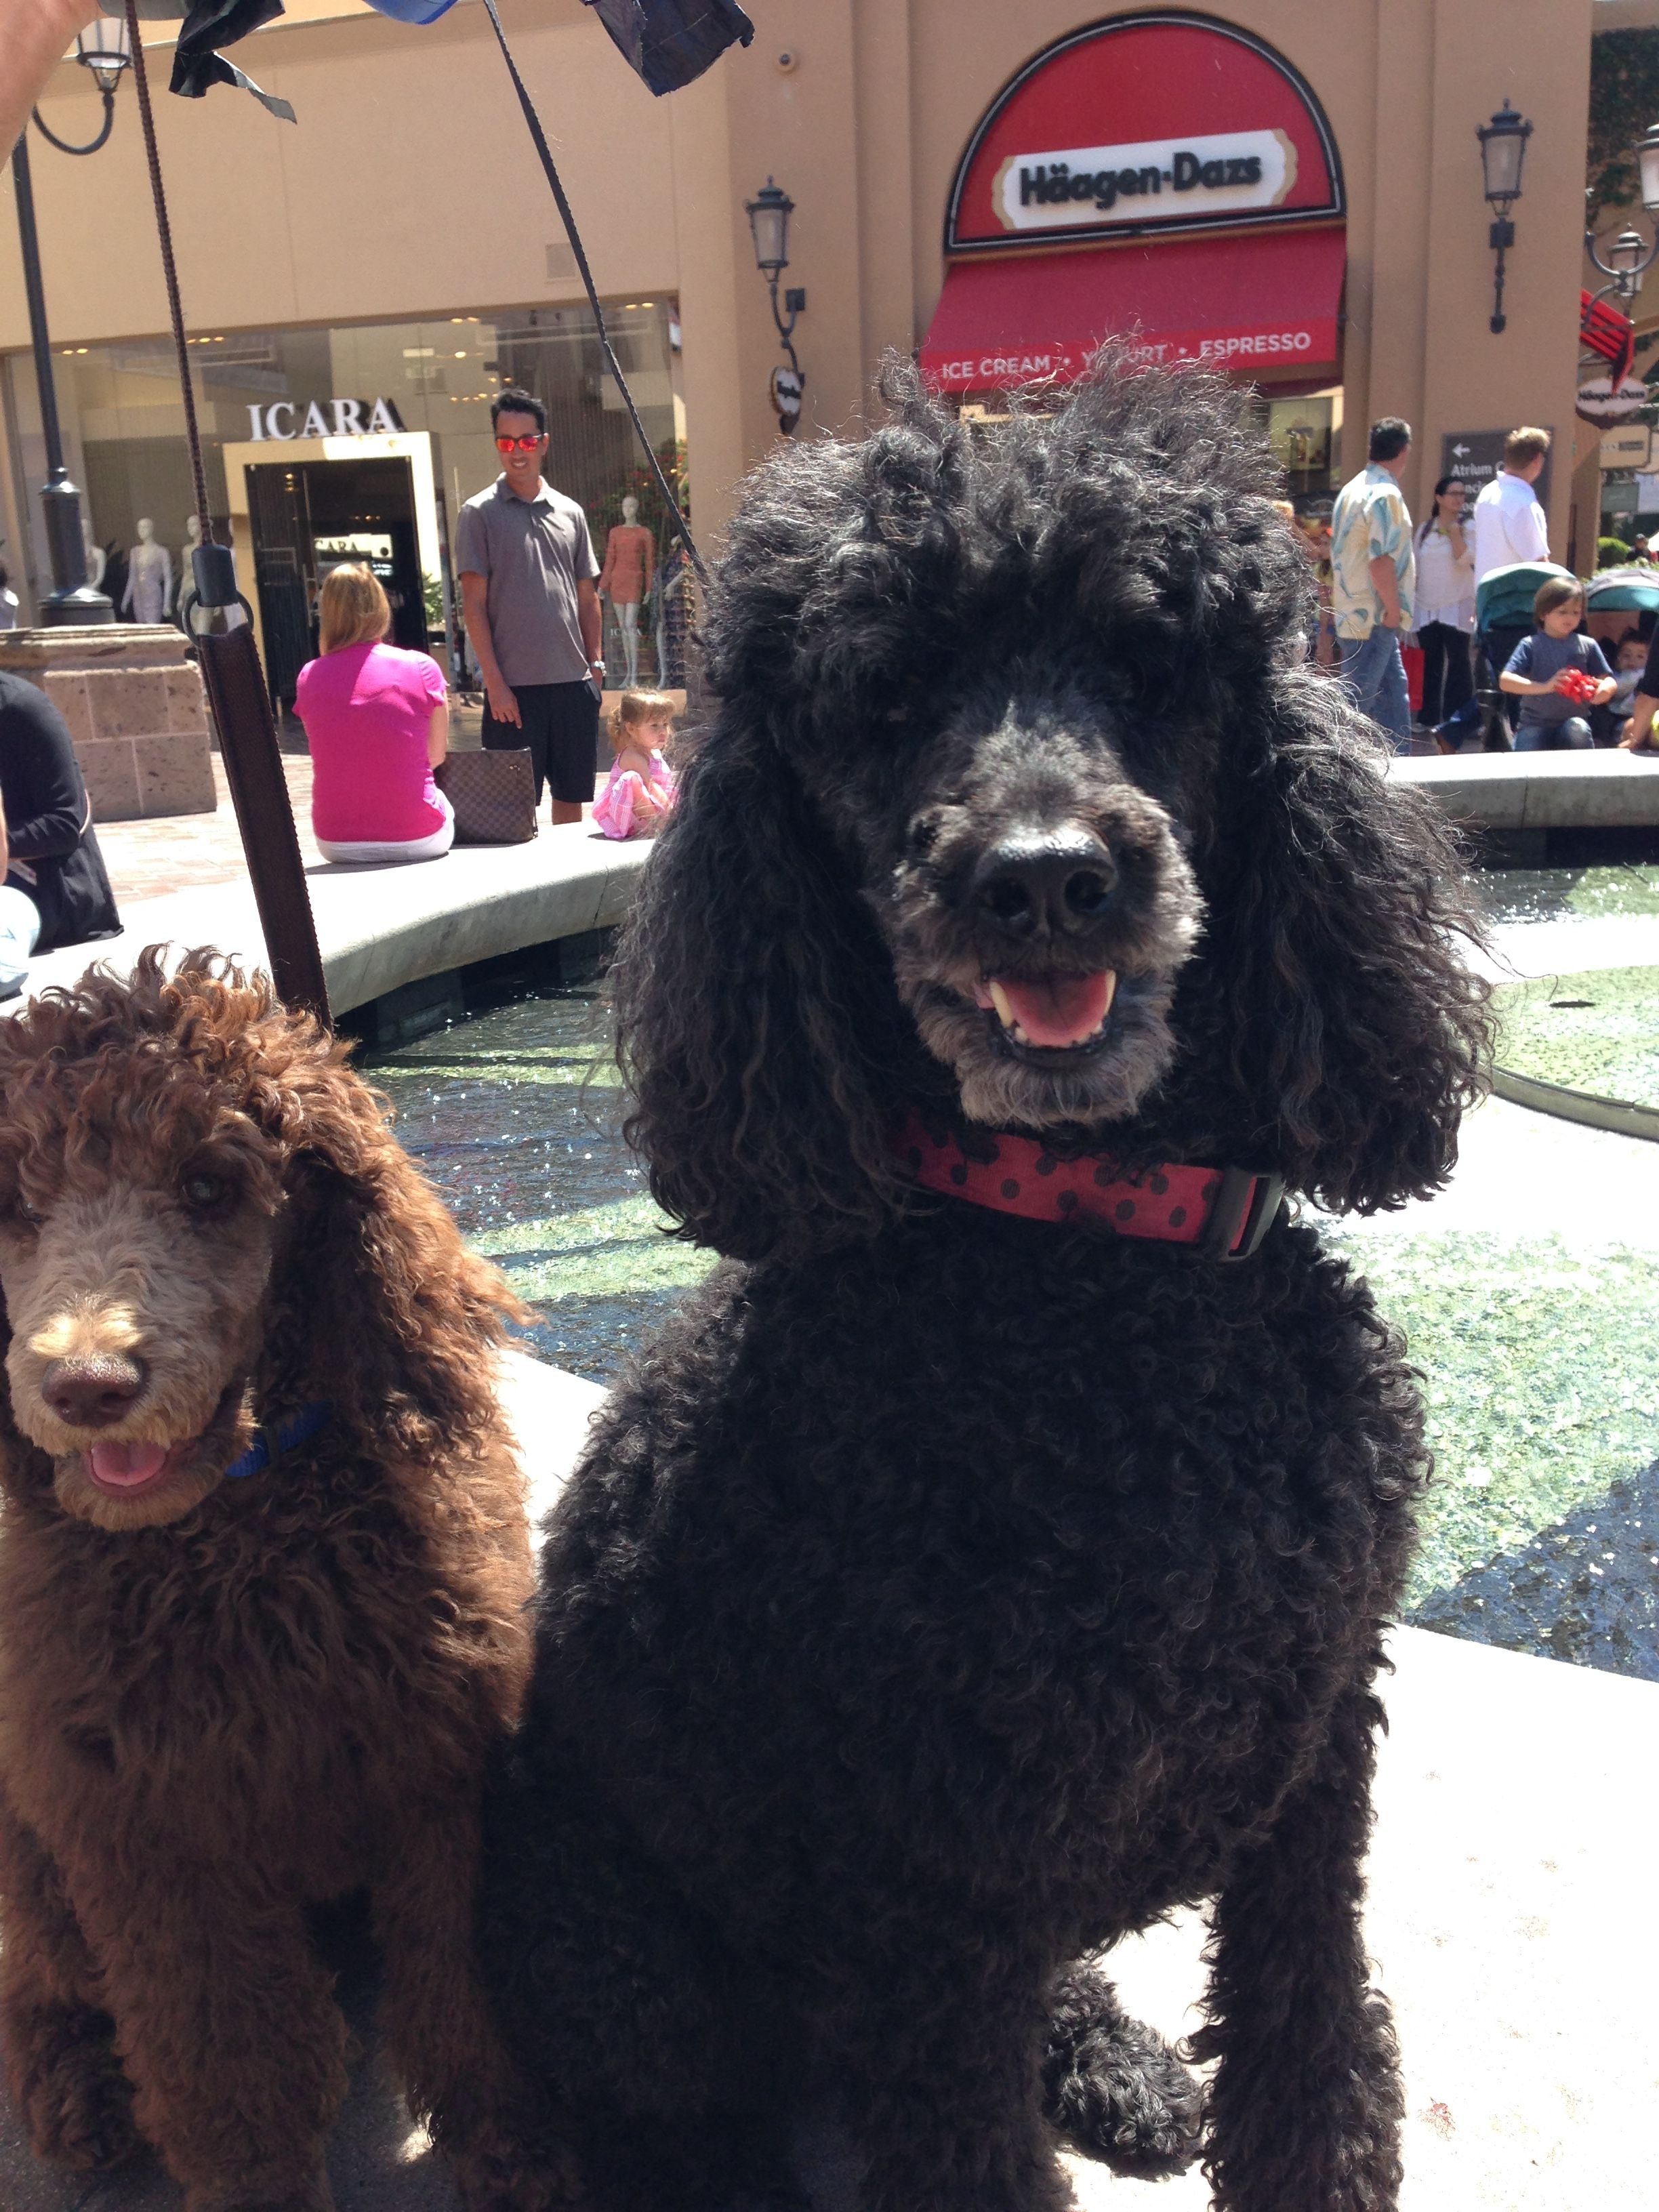 Maisy Black Poodle And Marcel Brown Poodle 14 Weeks Old Now